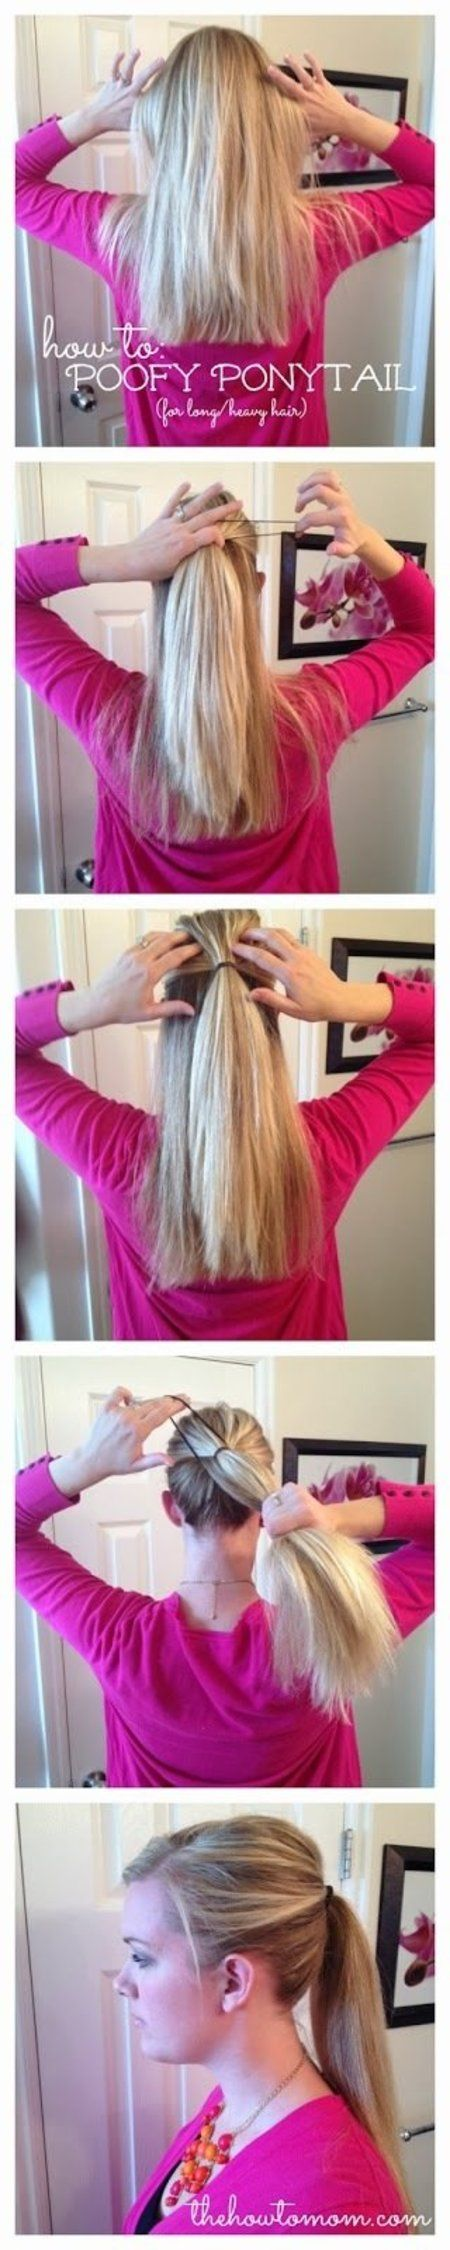 Ponytail without hair band - U Could Do Dis And Not Poof It And It Makes Ur Ponytail Stay Without Falling Those With Long Thick Hair Like Me Know What Im Talking About And M